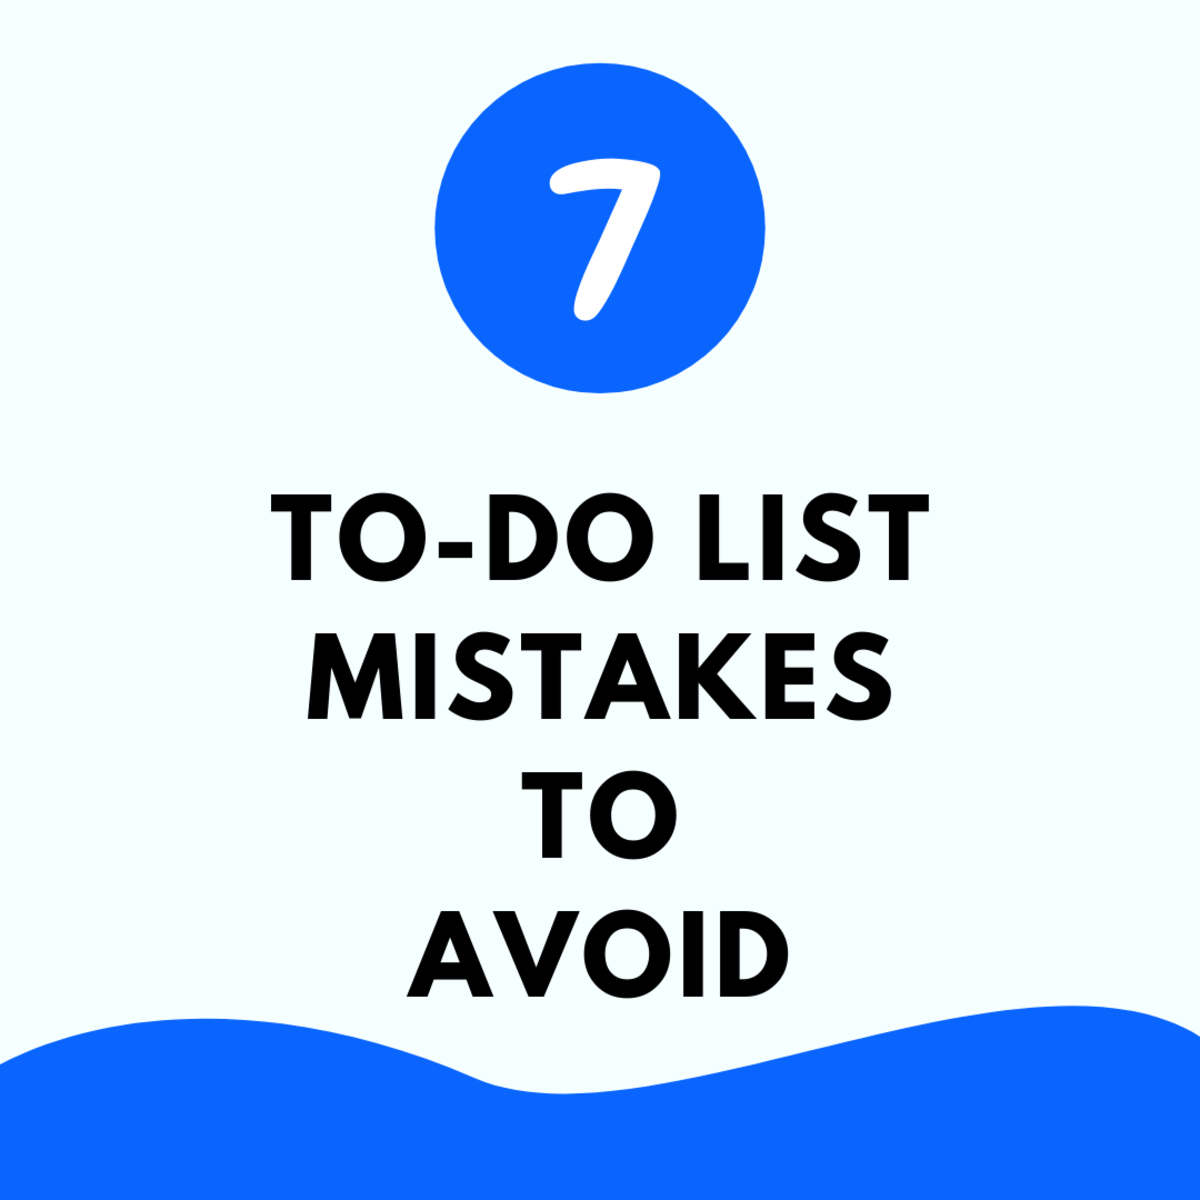 Seven most important to-do list mistakes to avoid to increase productivity